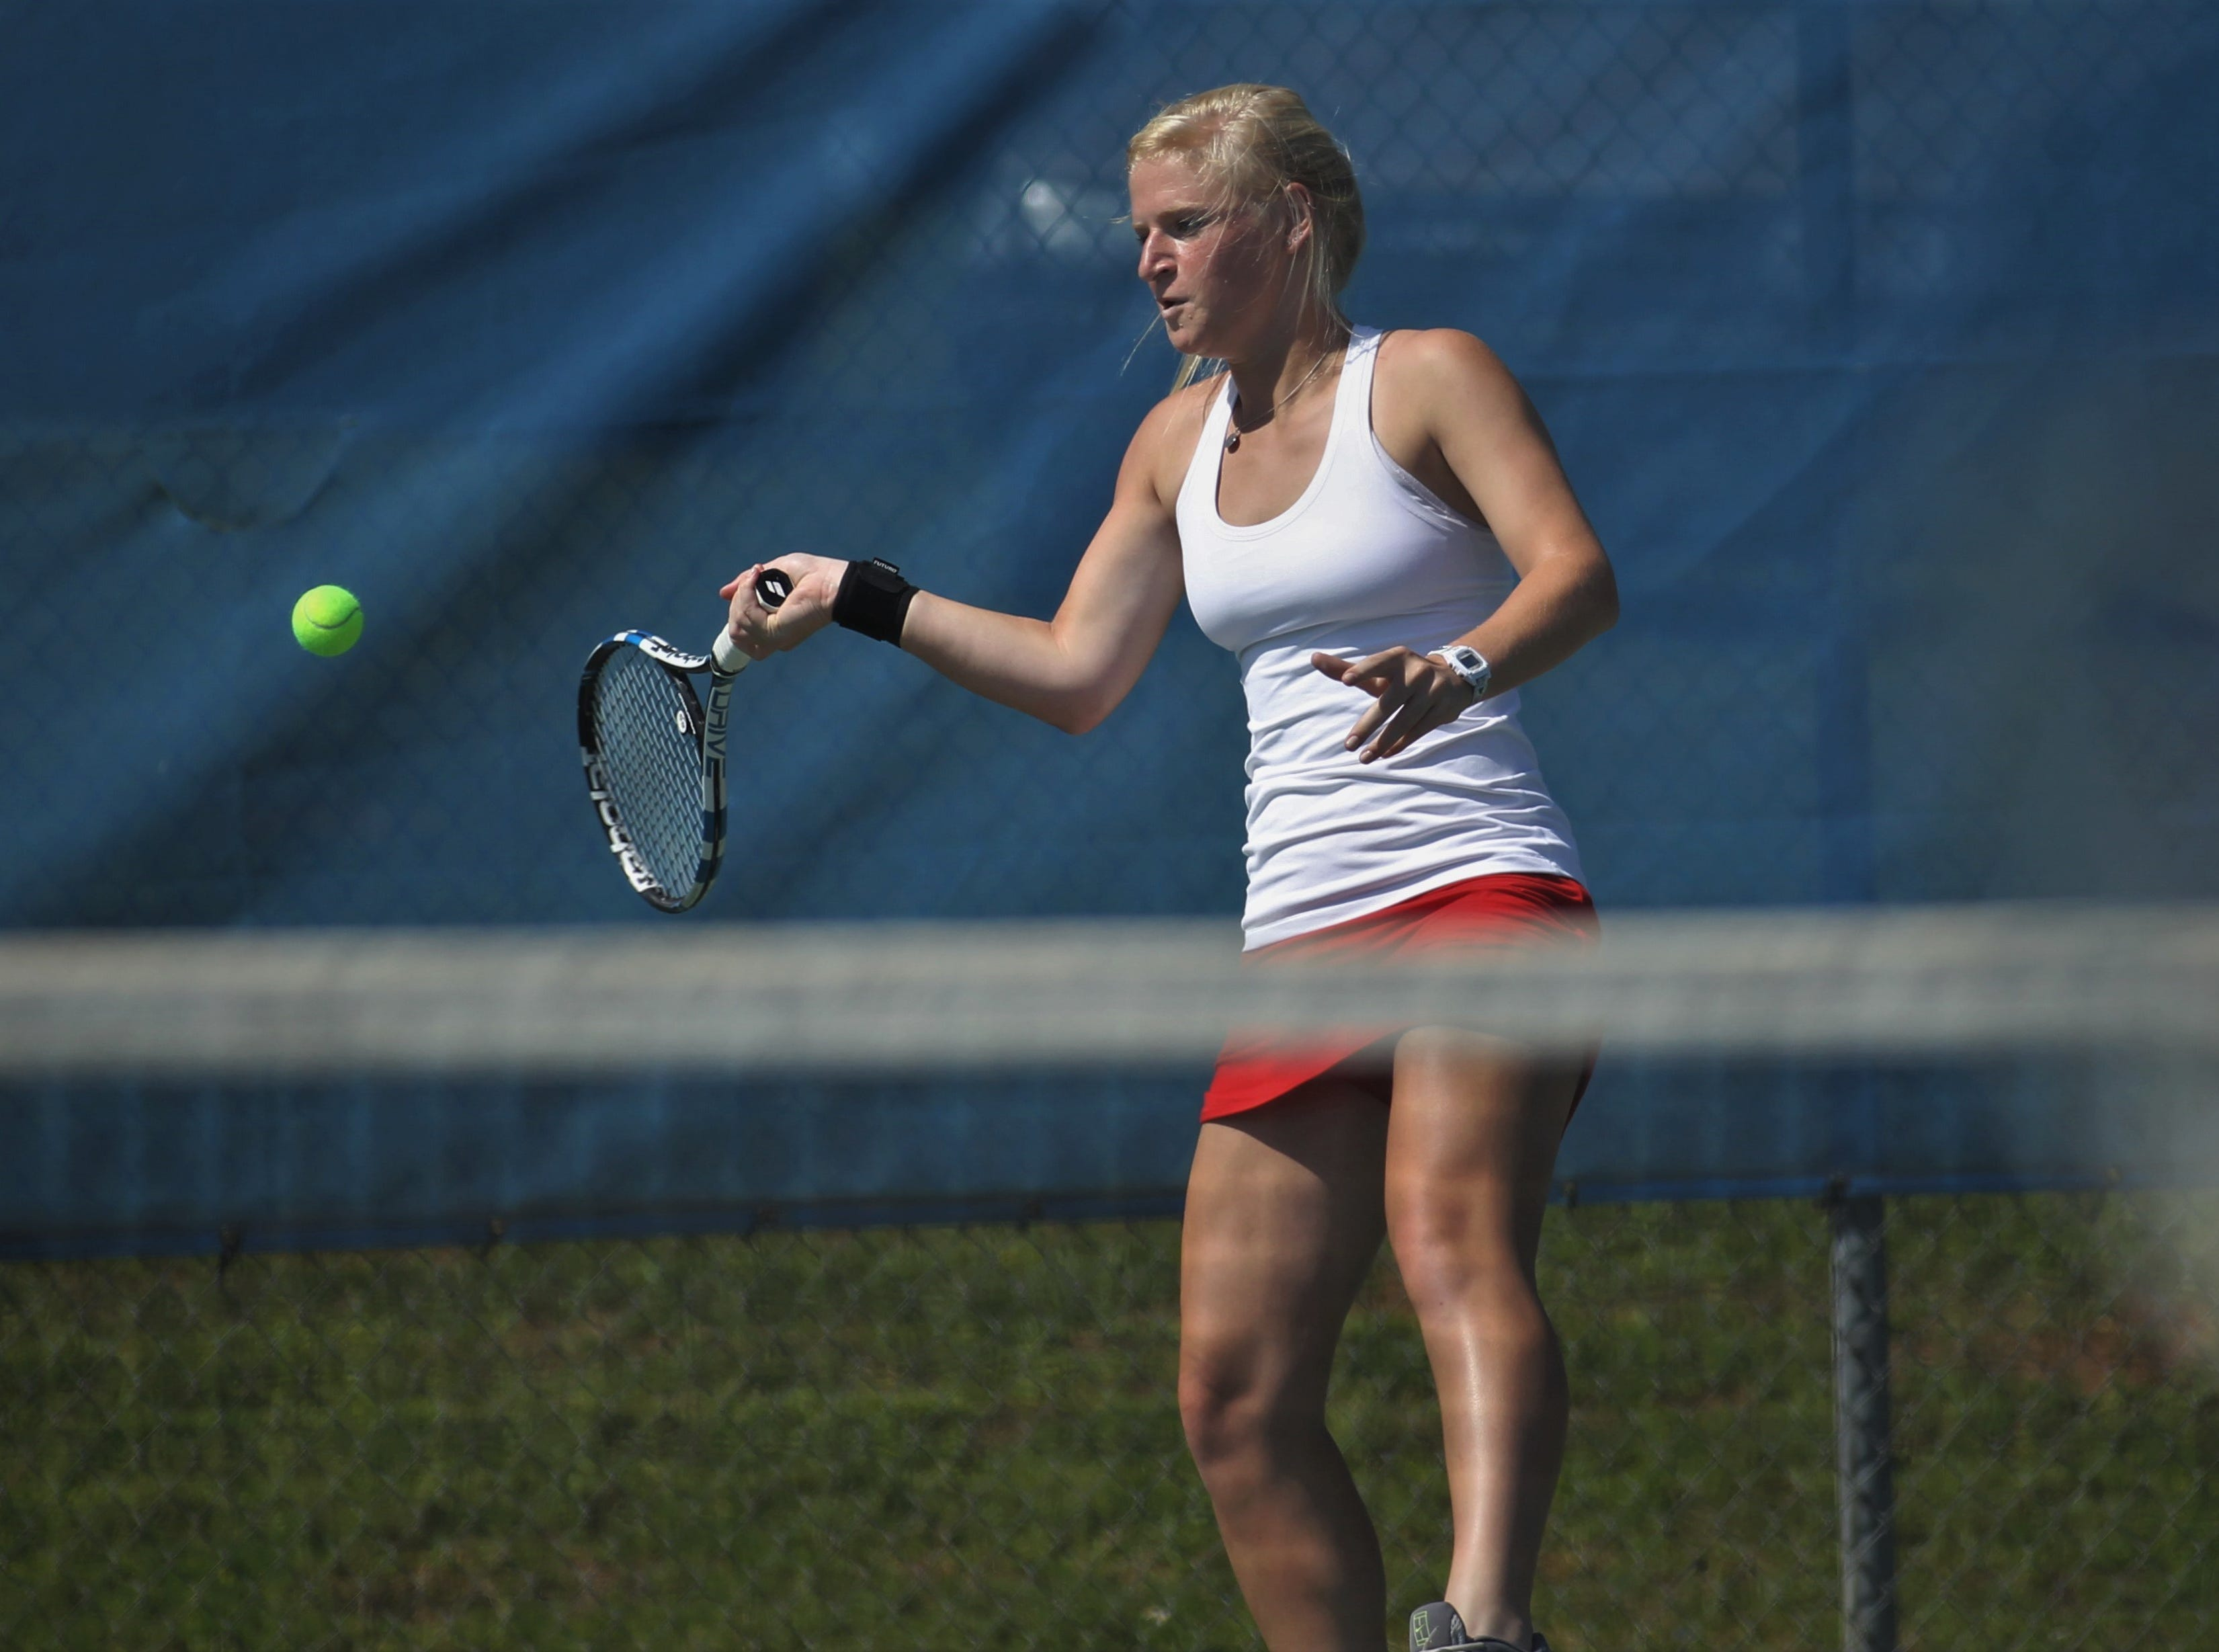 Leon senior Jules Grady hits a forehand shot during the boys and girls tennis 2019 City Tournament at Tom Brown Park on March 12, 2019.